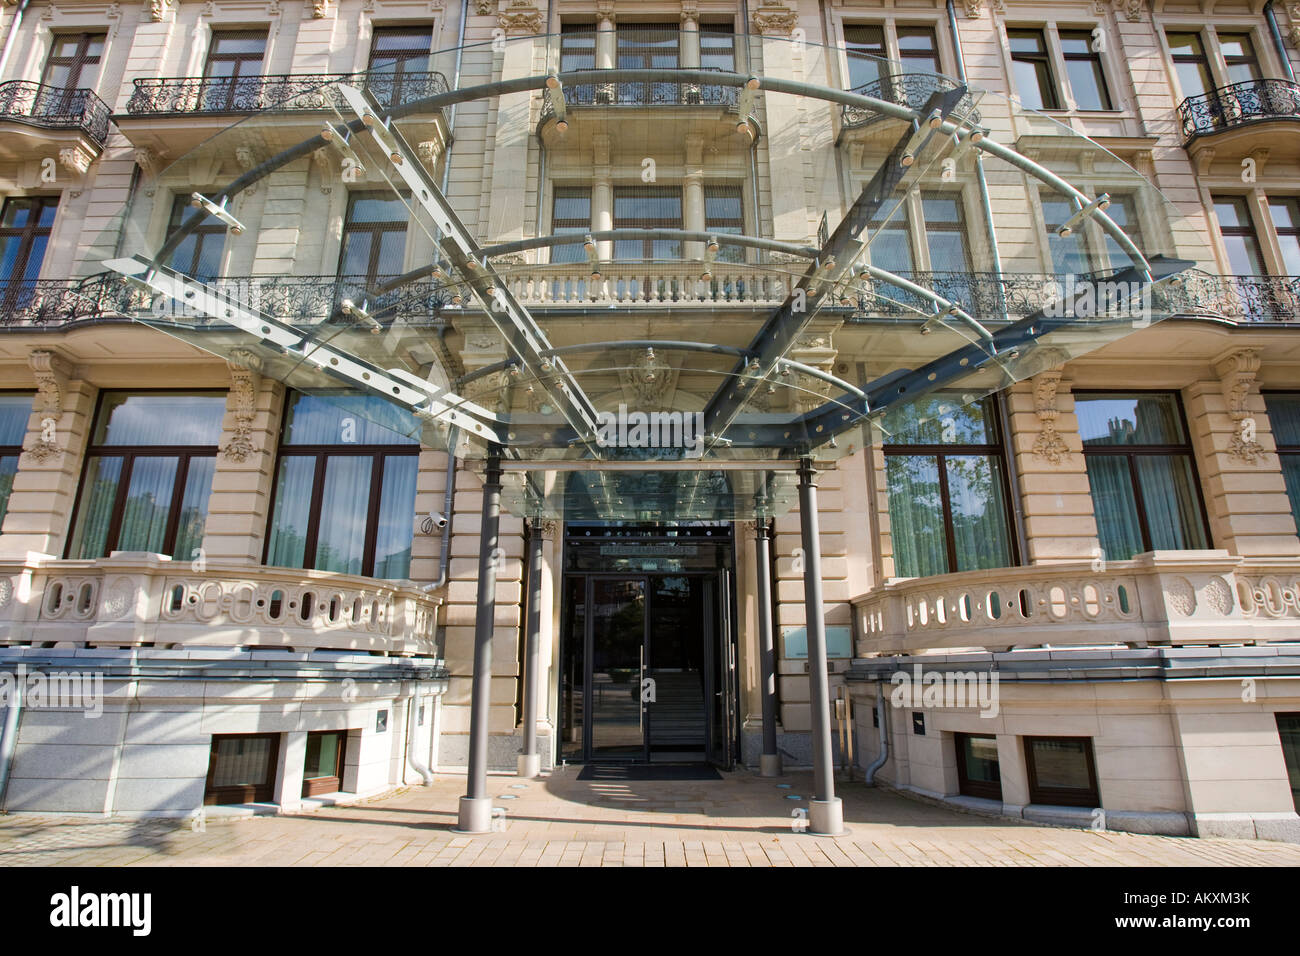 The new Hessian state chancellery, (formerly the hotel Rose), Wiesbaden, Hessen, Germany. Stock Photo